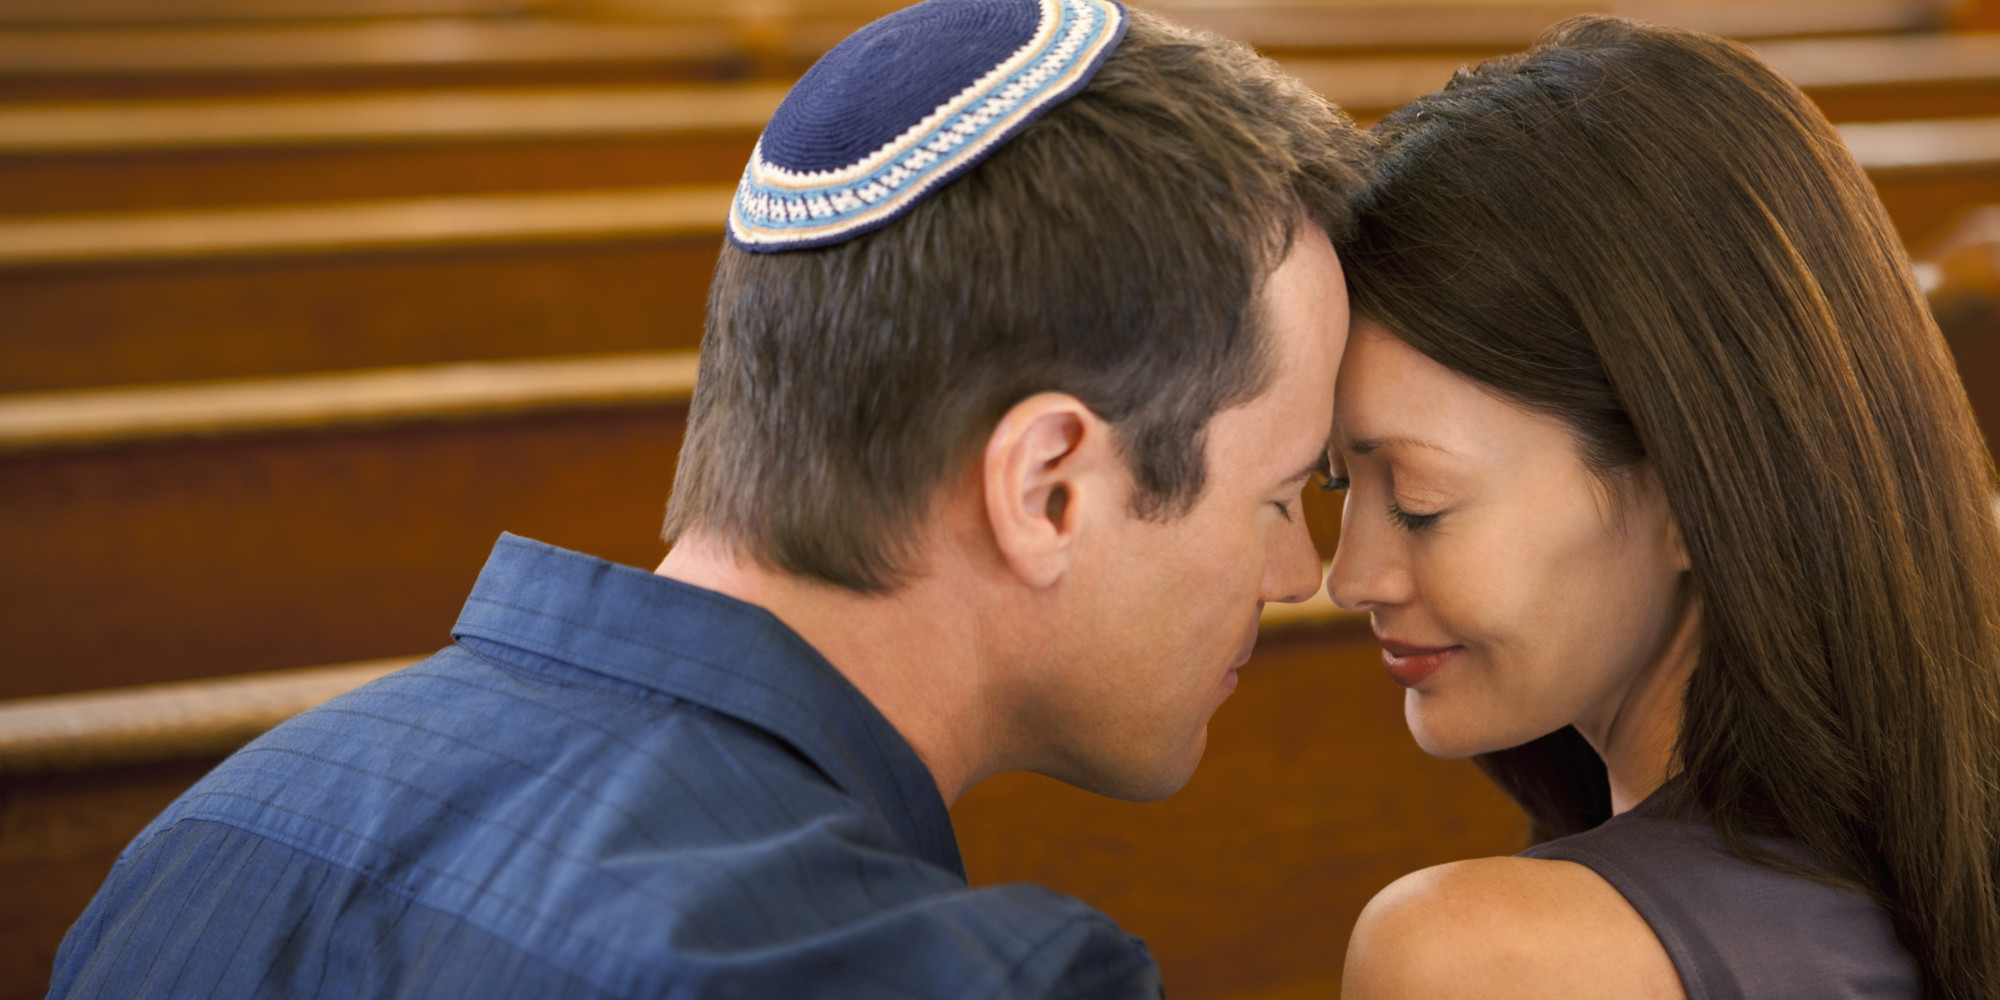 Asian Jewish Dating Looking For Men